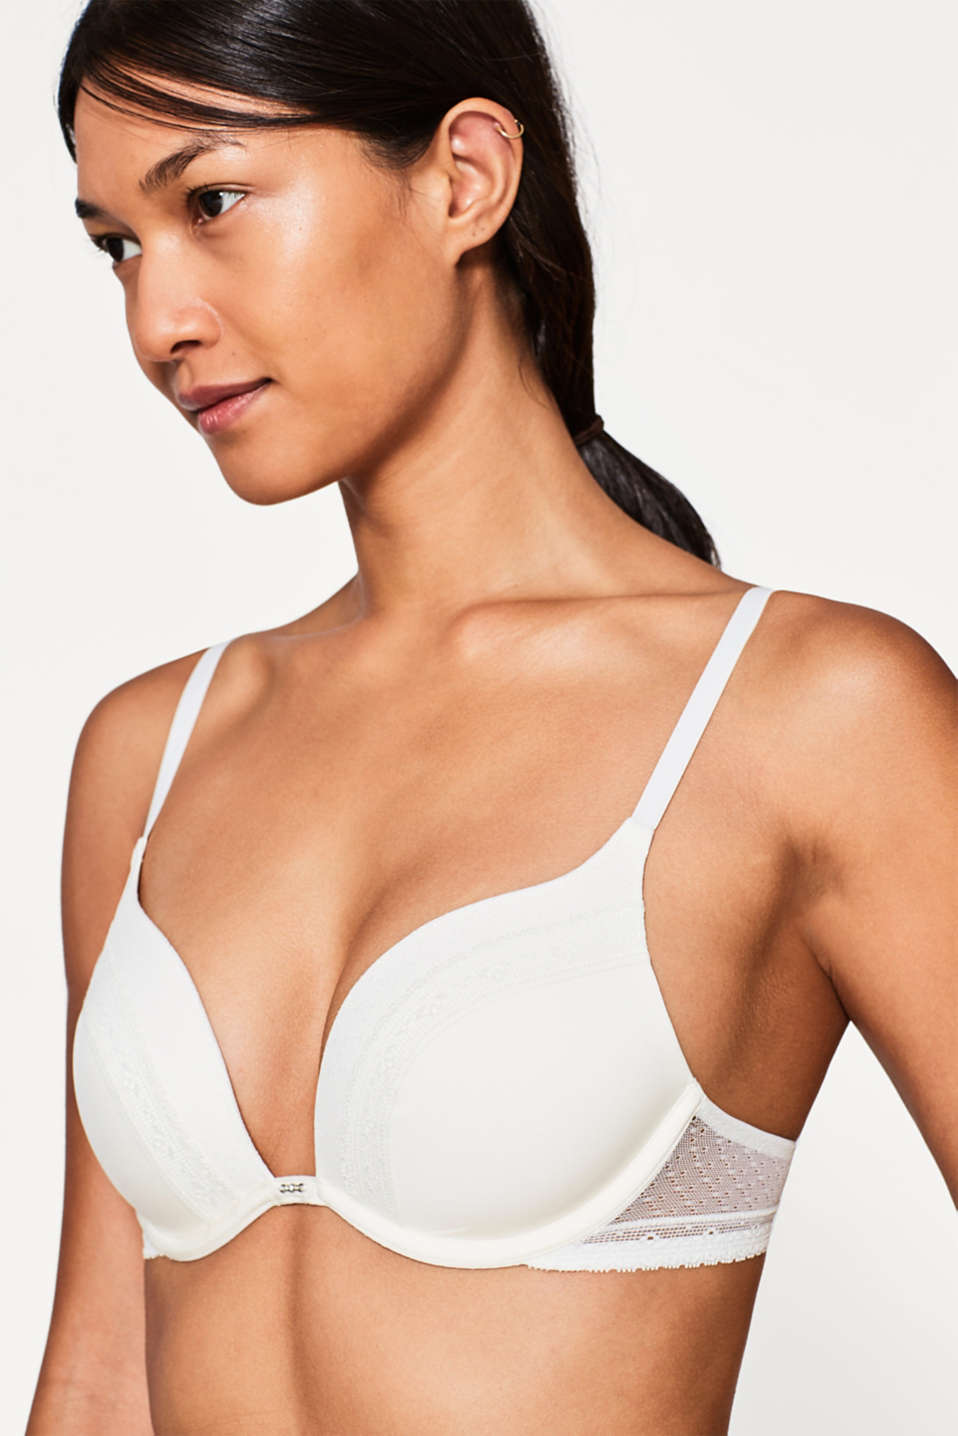 Push-up bra in delicate lace